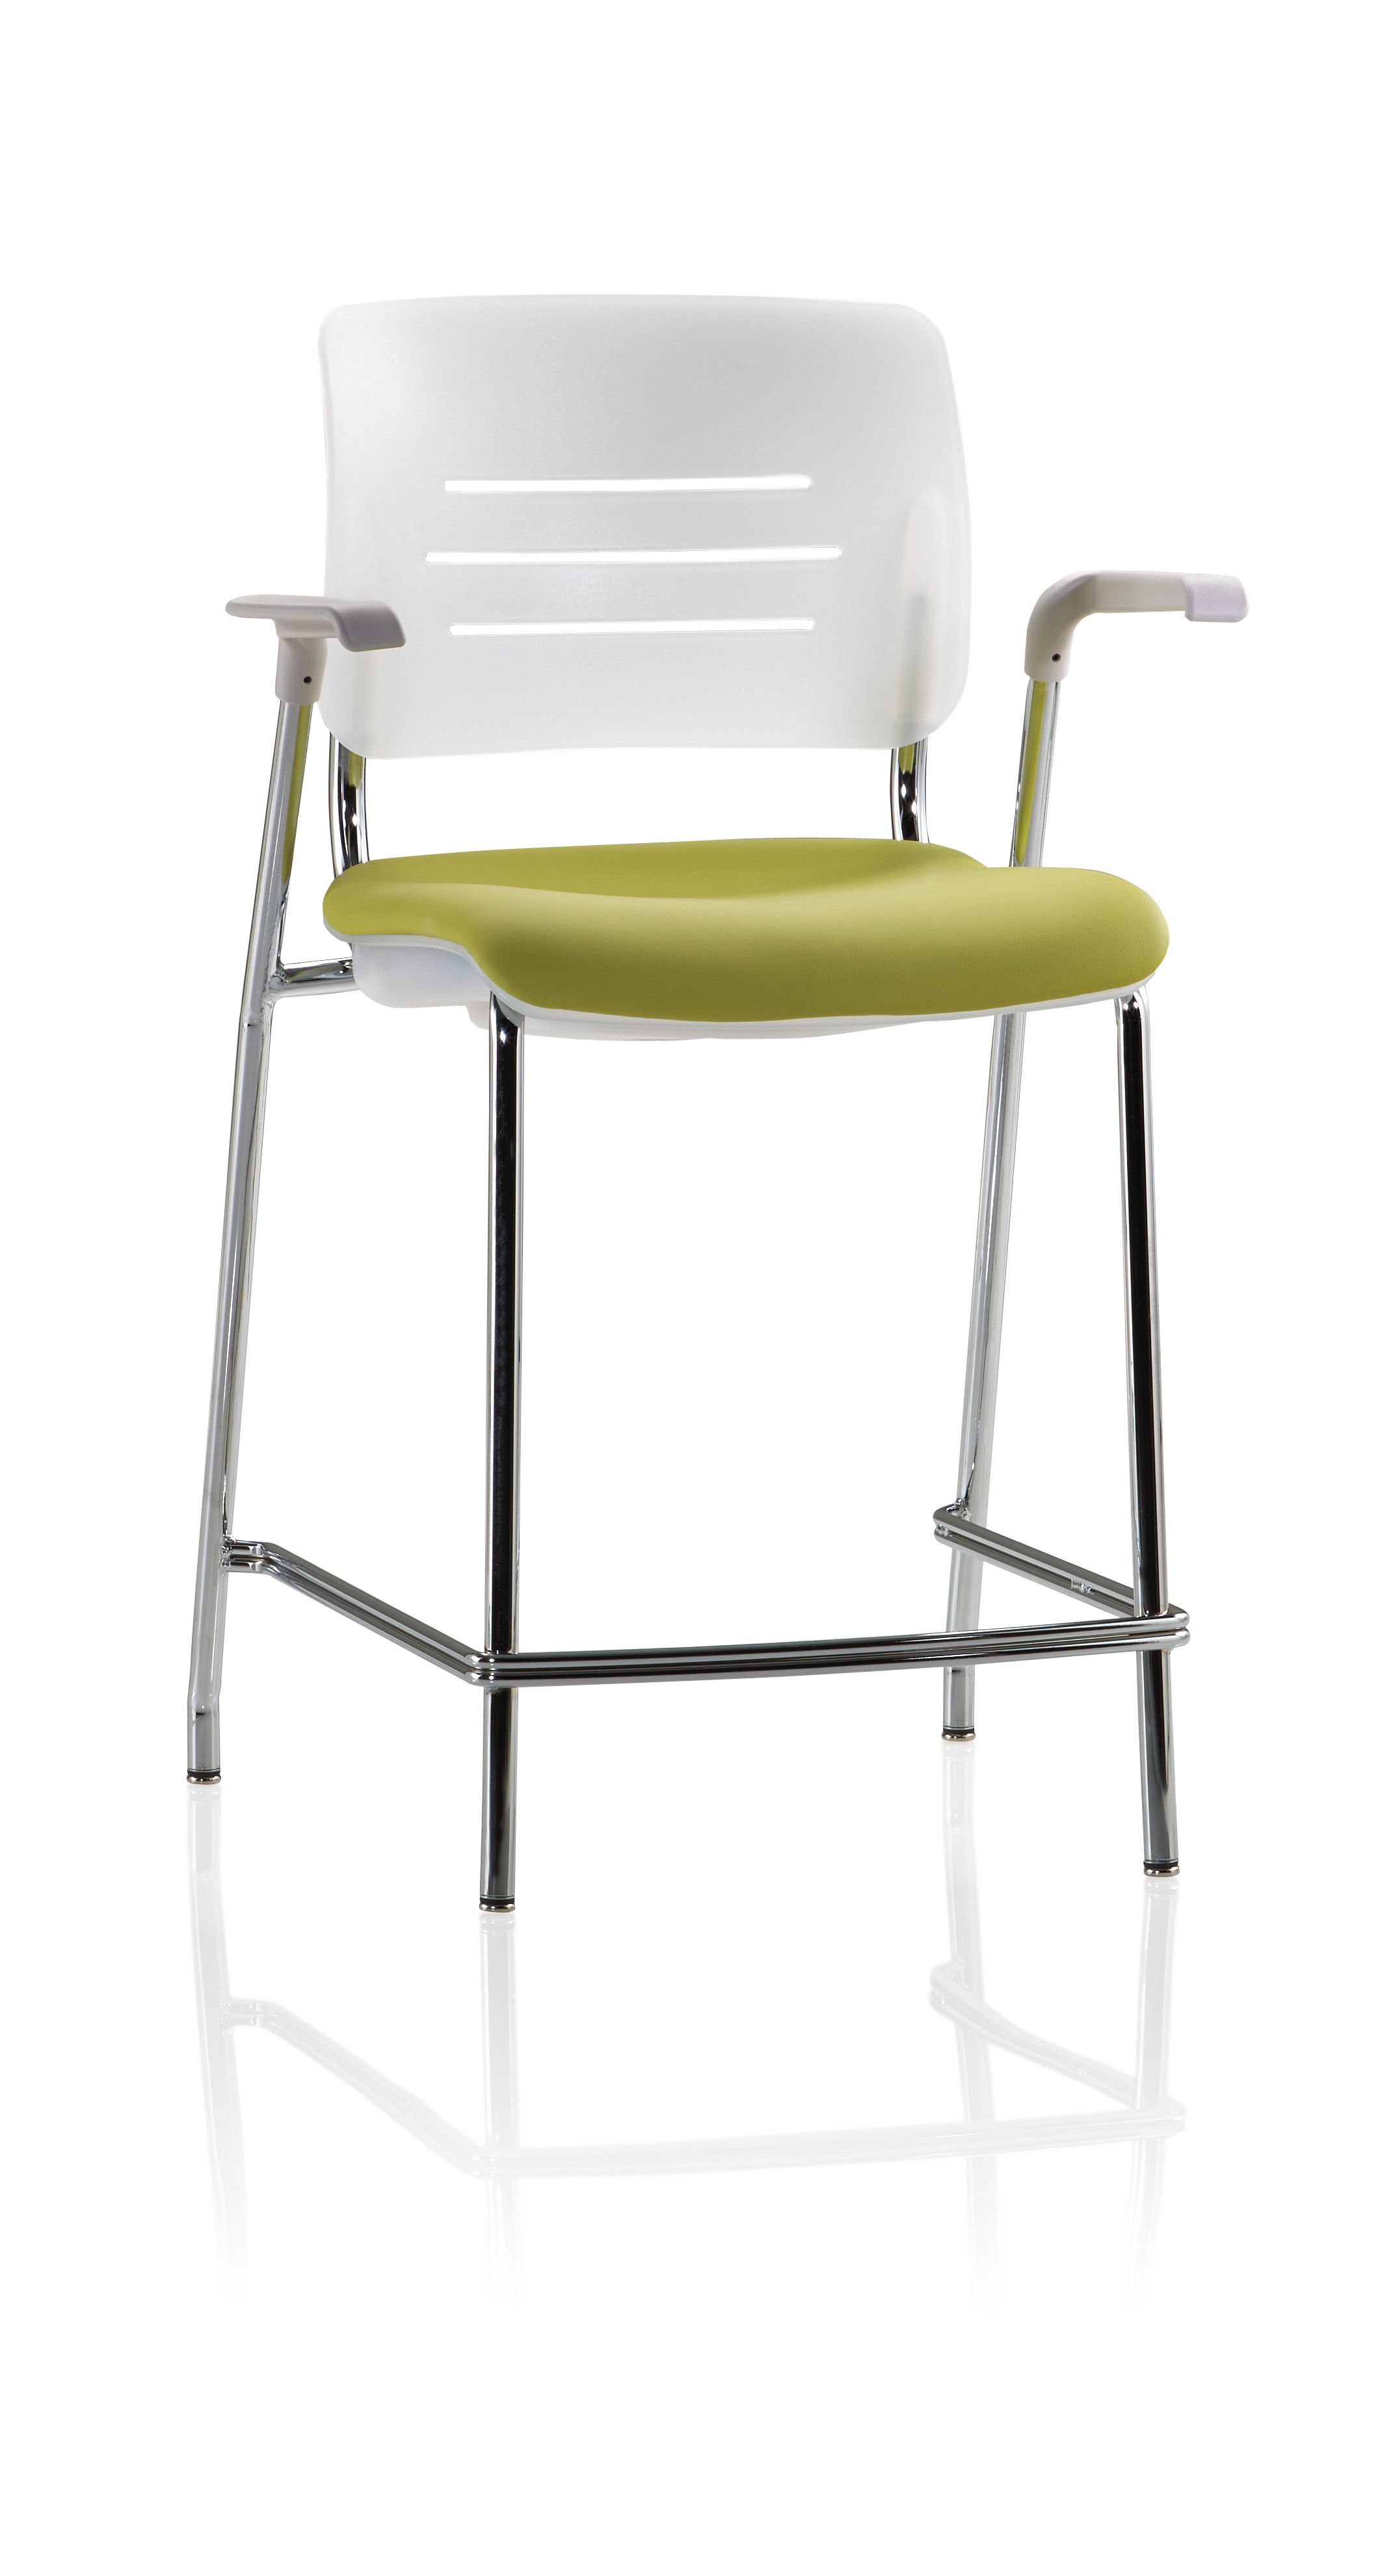 Grazie Cafe Stool with Upholstered Seat & Arms